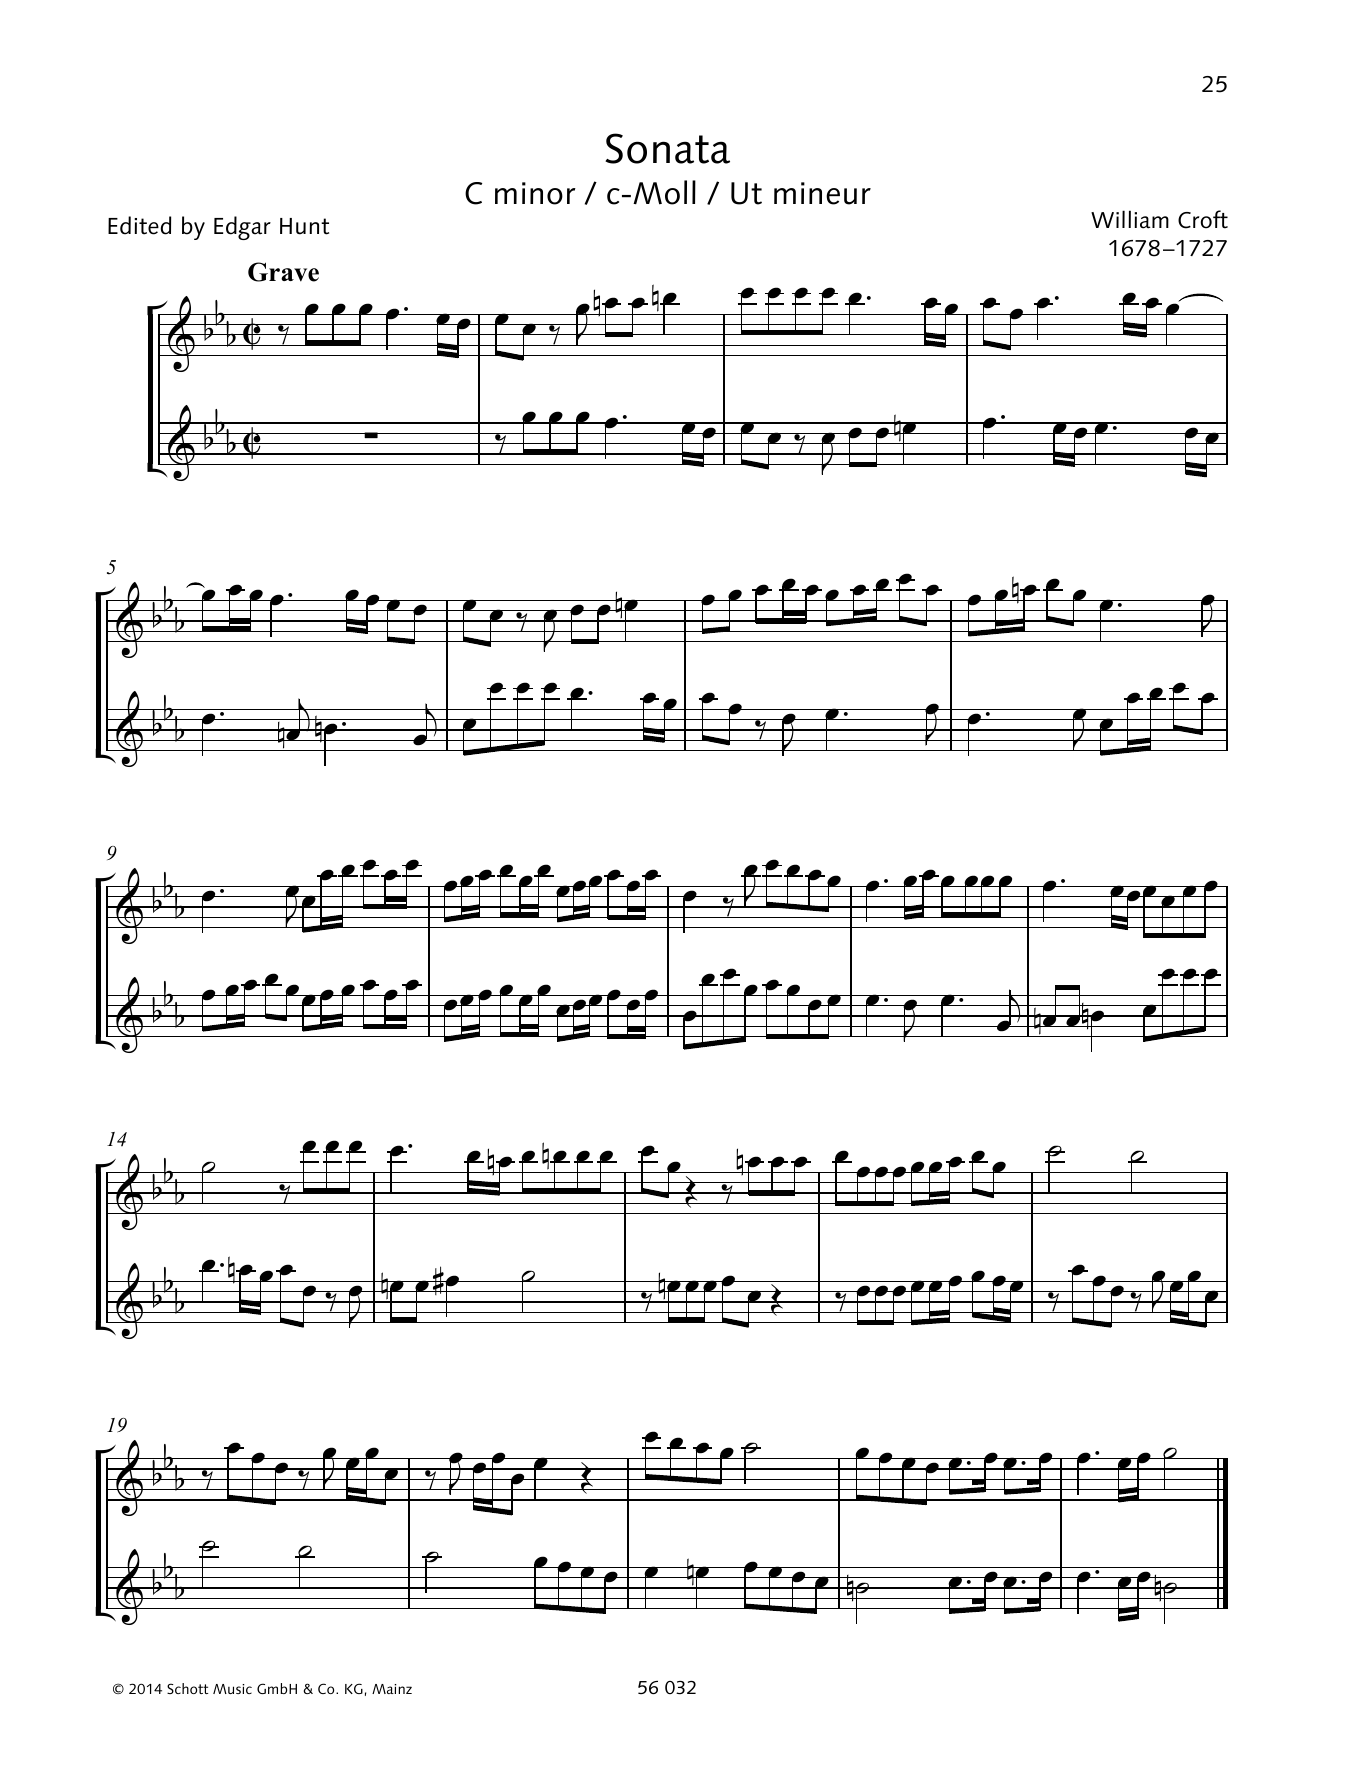 Sonata C minor Sheet Music